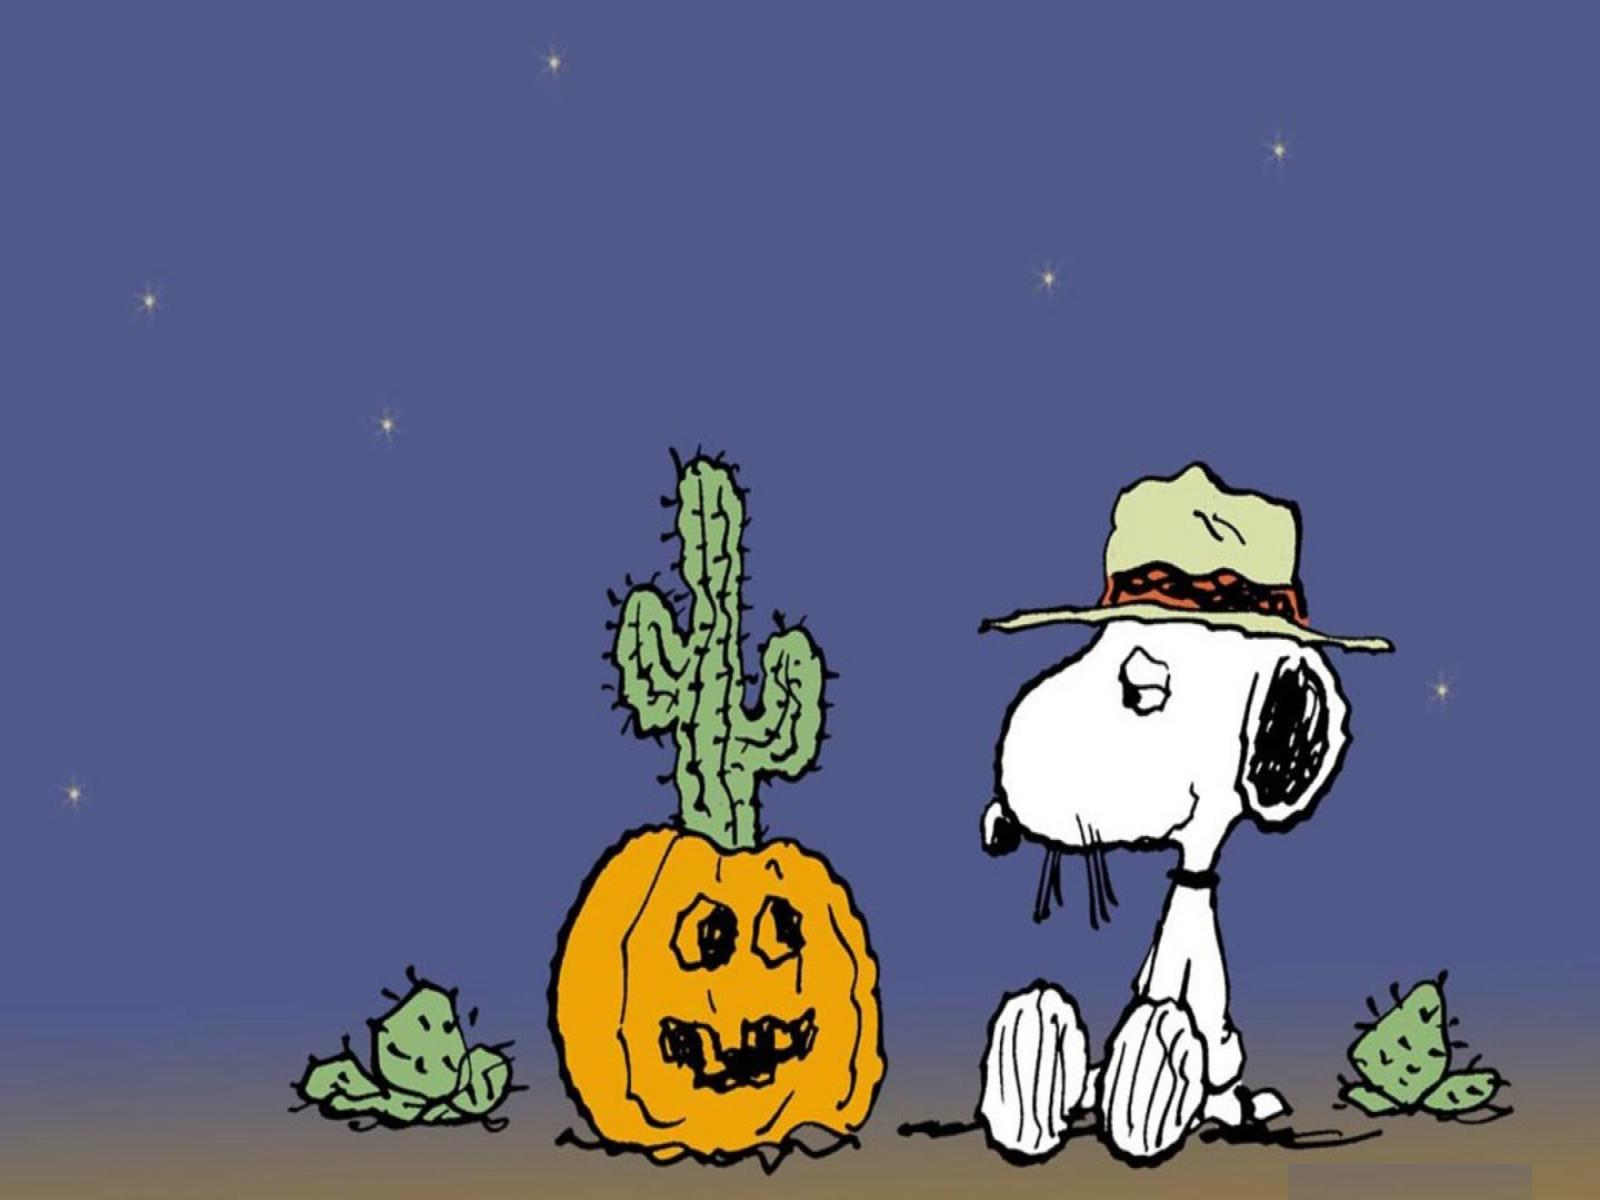 Charlie-Brown-Halloween-Desktop-CHARLIE-BROWN-peanuts-comics-halloween-snoopy-f-backgrou-wallpaper-wp4003876-1